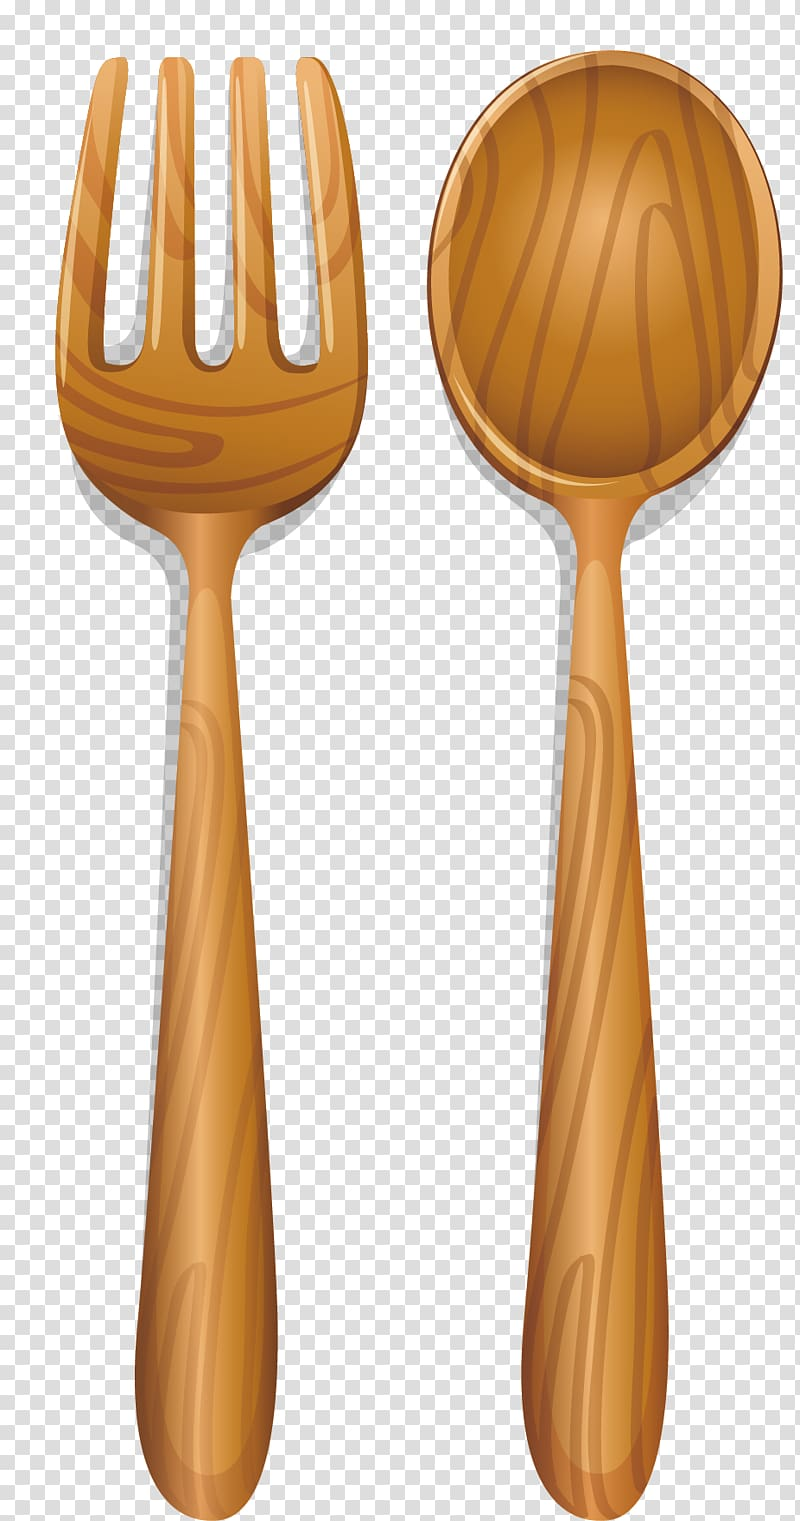 Knife Fork Wooden spoon, Wooden spoon transparent background.